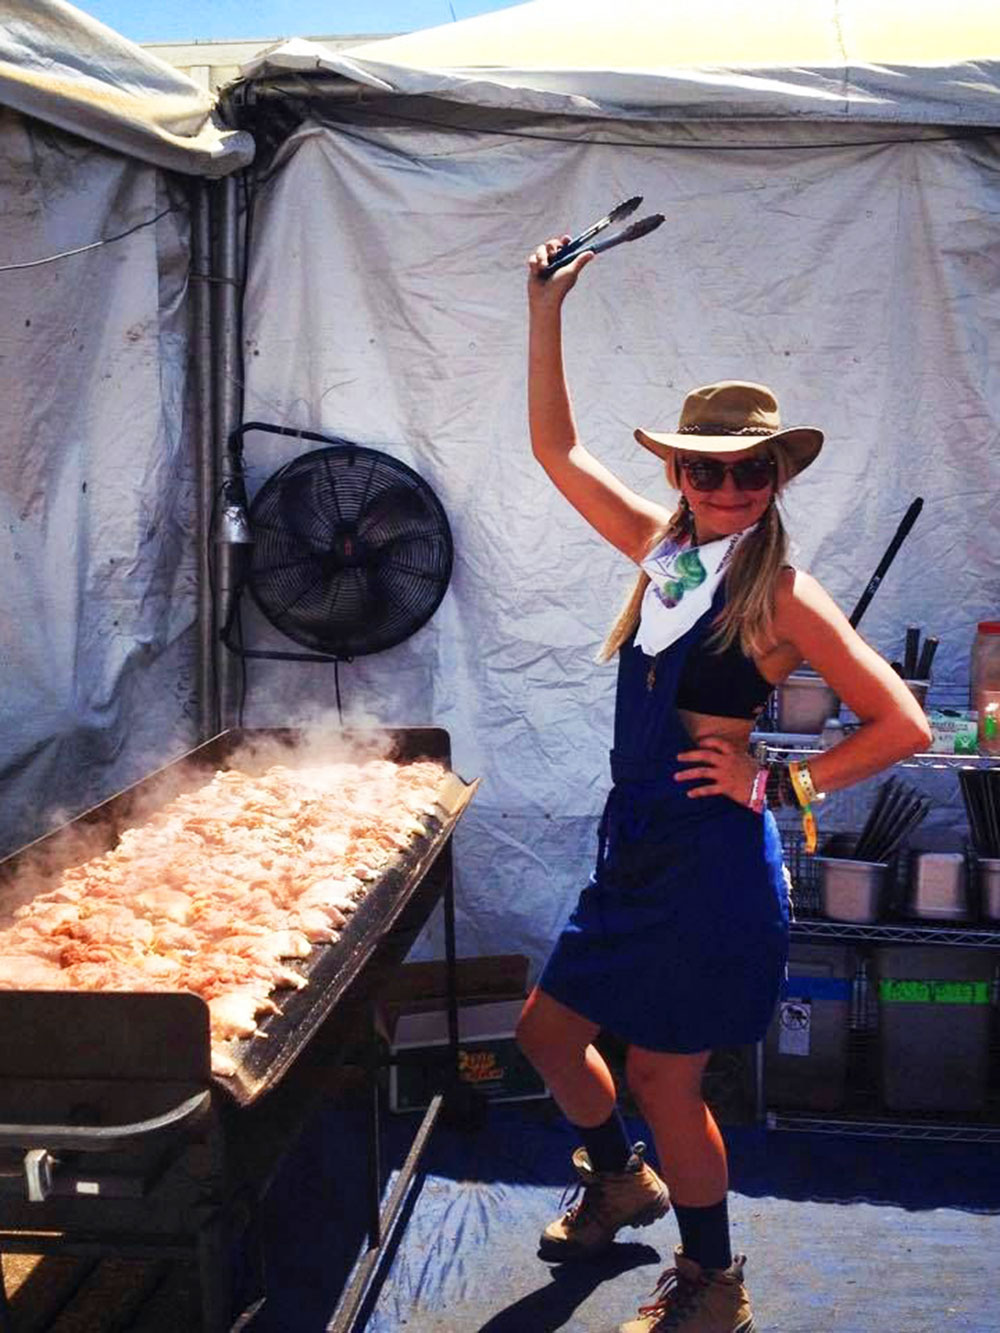 Kellie Mogg cooking 40 pounds of chicken for the Peace Love Tacos Food Truck at Coachella Music Festival